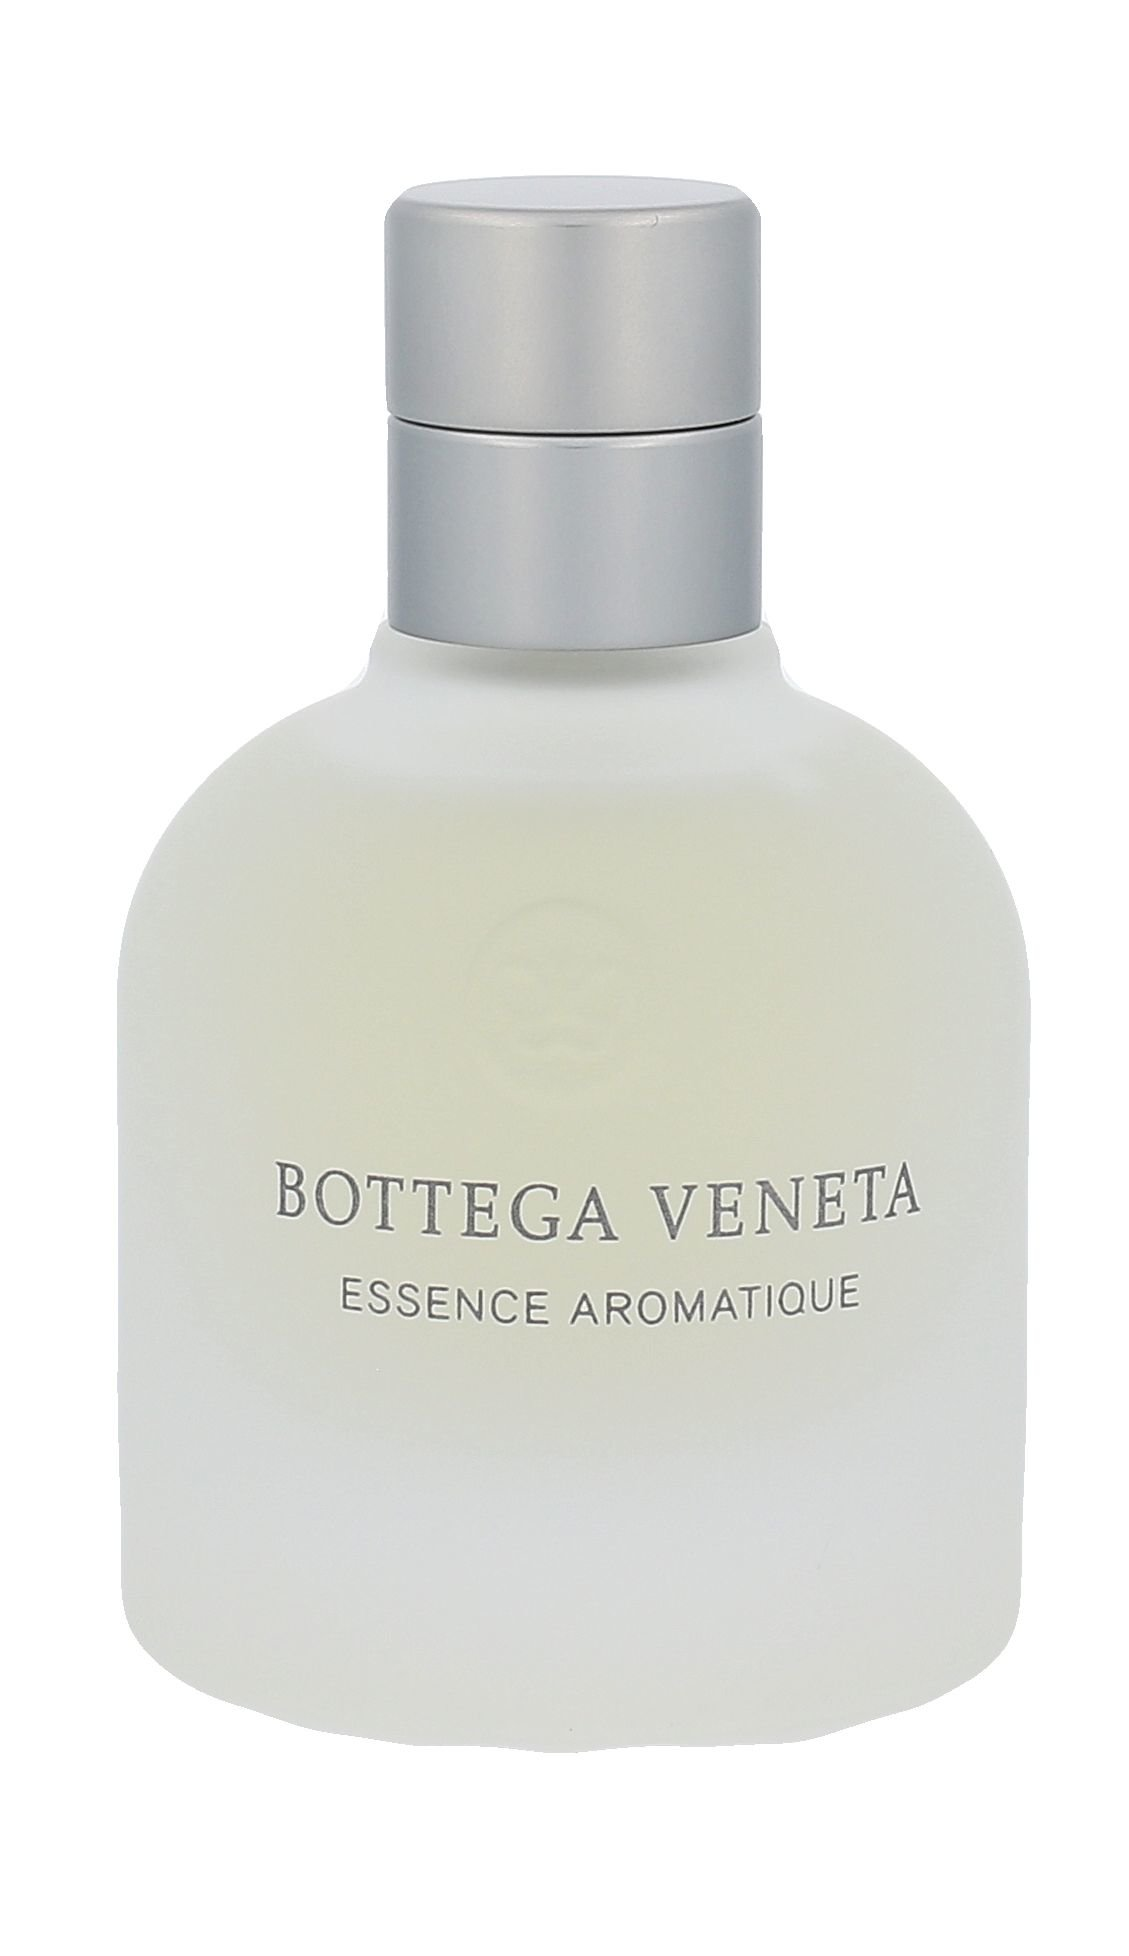 Bottega Veneta Bottega Veneta Essence Aromatique Cologne 50ml